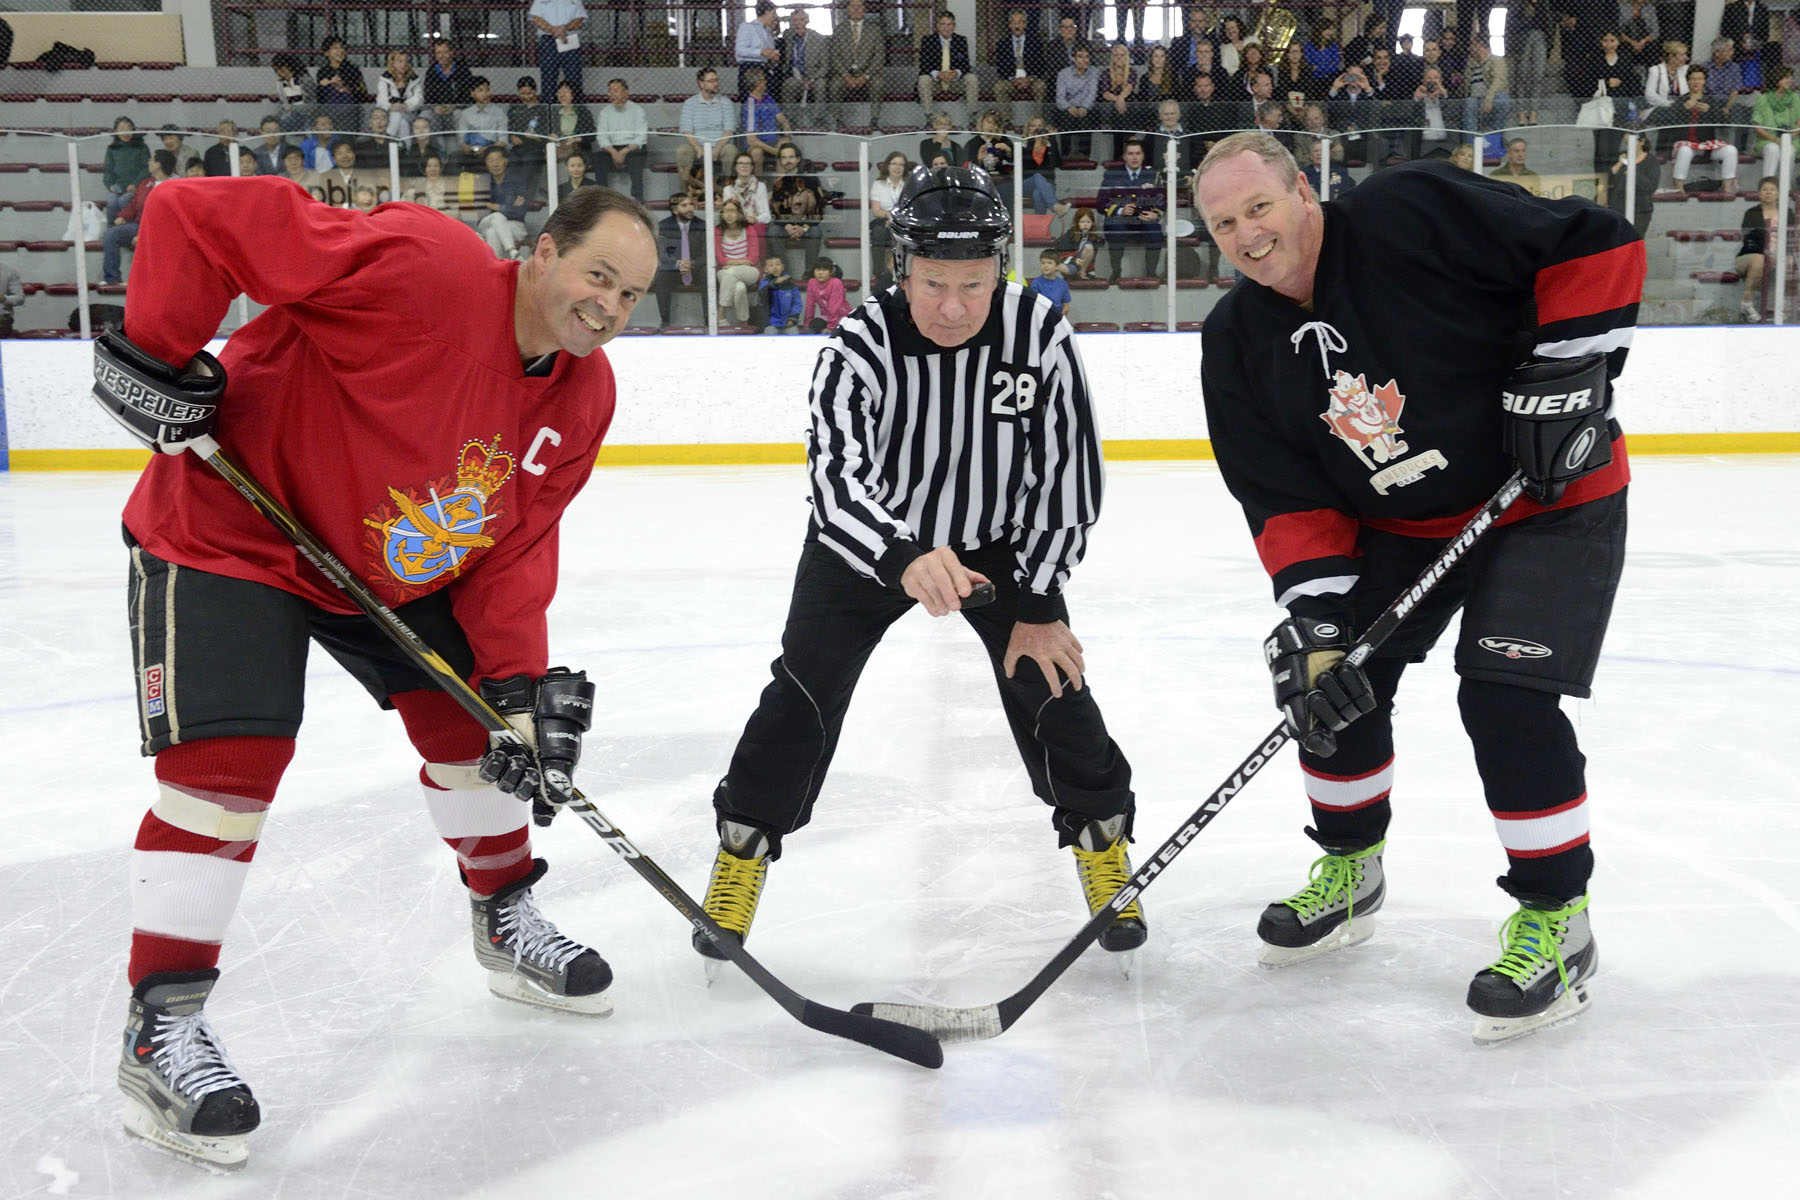 His Excellency conducted the official puck-drop with captains from both teams: Chief of the Defence Staff General Thomas J. Lawson of the GOFO team (left), and Wing Commander Russell Page (right) of the Lame Ducks team.